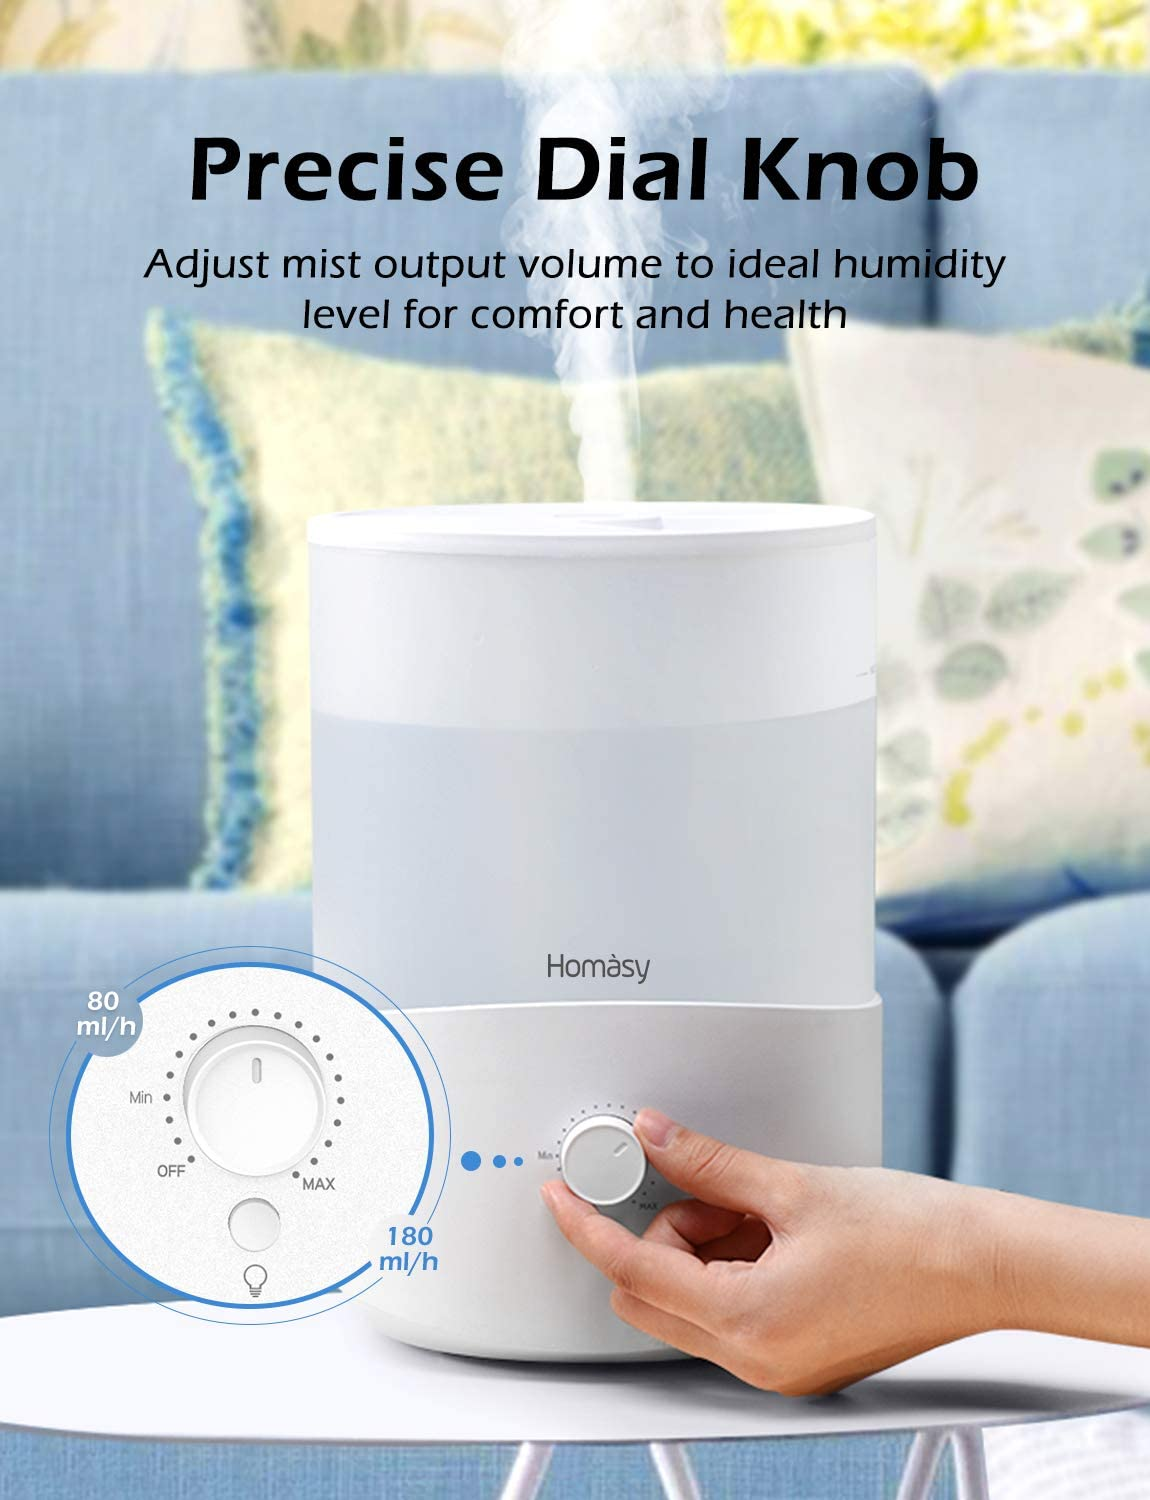 Top-Fill Air Humidifier with Precise Dial Knob 28dB Quiet Humidifier 2.5L Cool Mist Humidifier and Oil Diffuser 30 Hours Working Time for Baby Bedroom Home Office All White Homasy Humidifiers